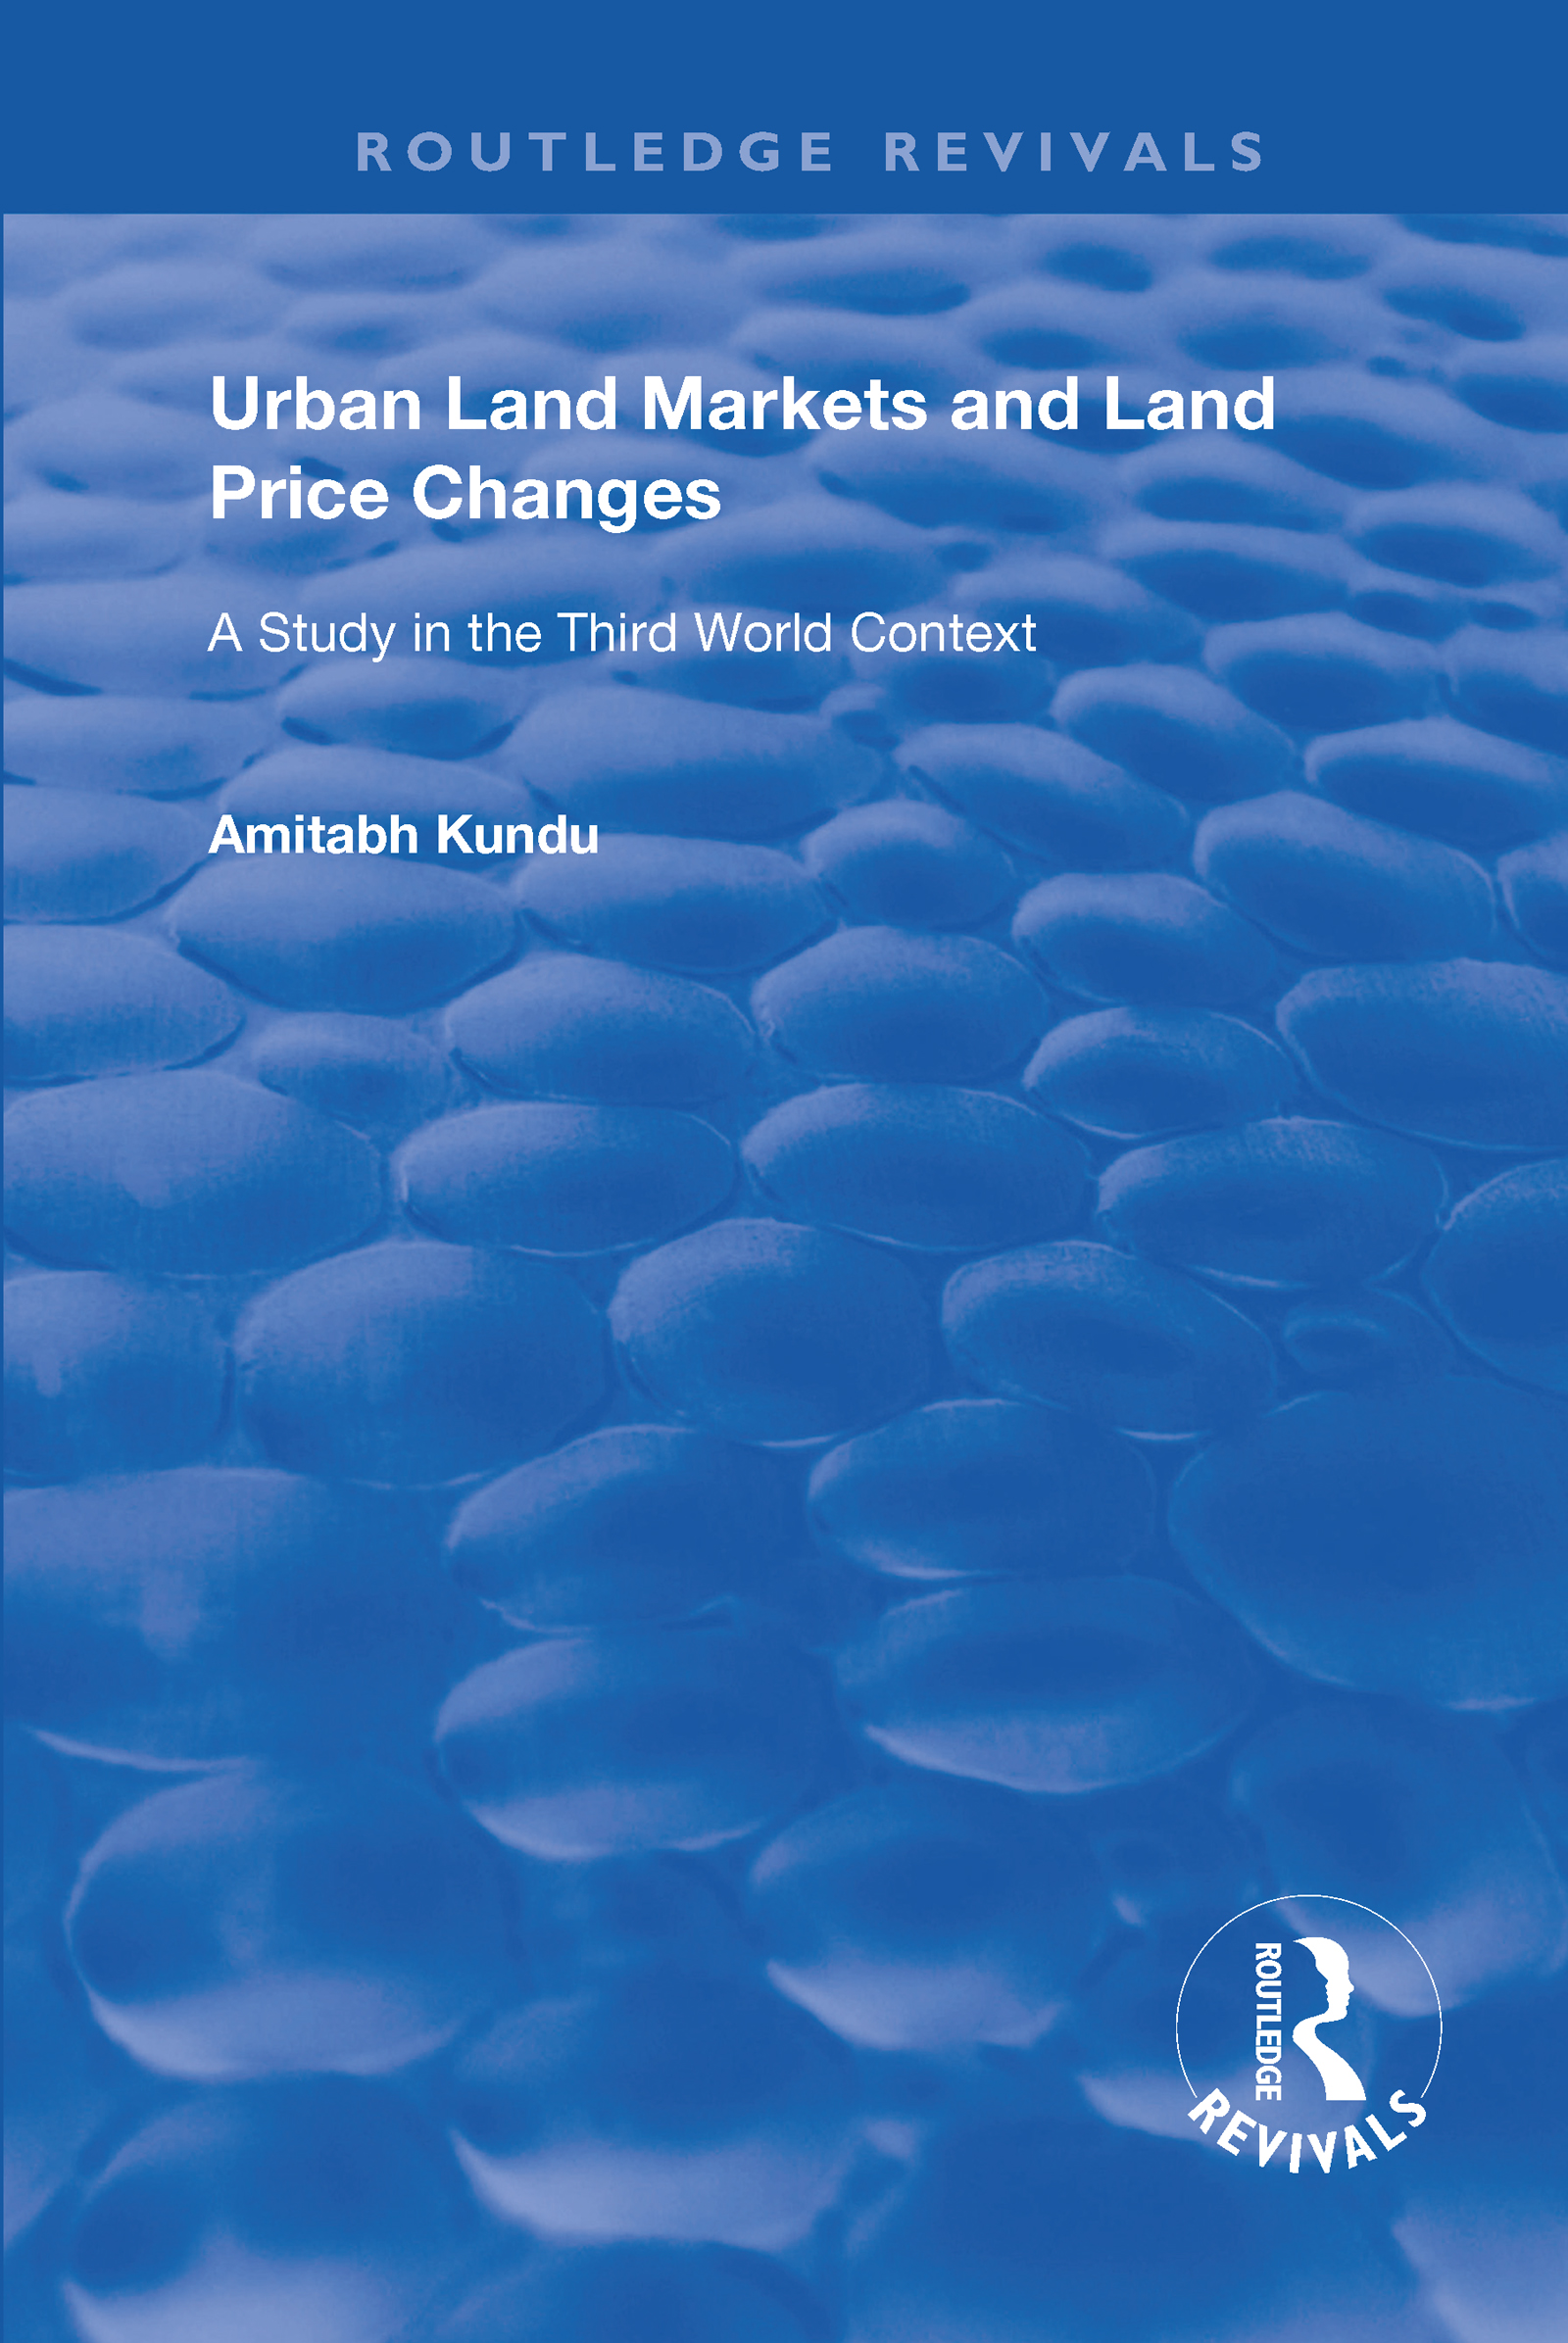 Urban Land Markets and Land Price Changes